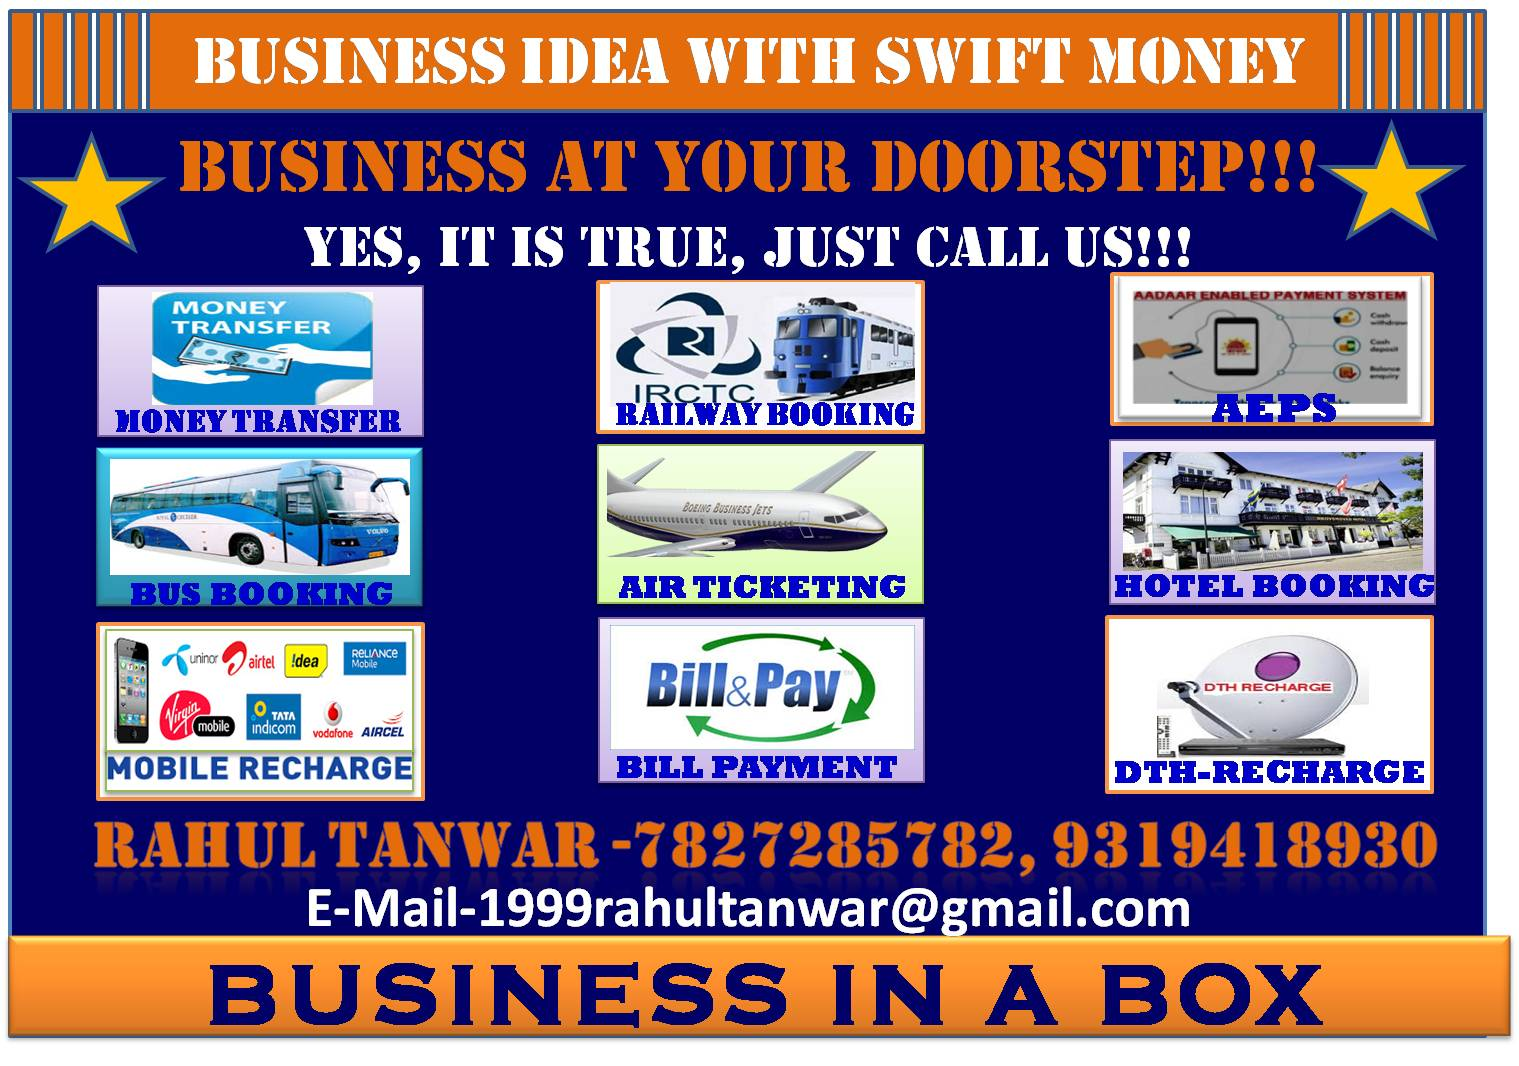 http://www.bhadotri.com/business-idea-with-low-investment-and-high-profit/